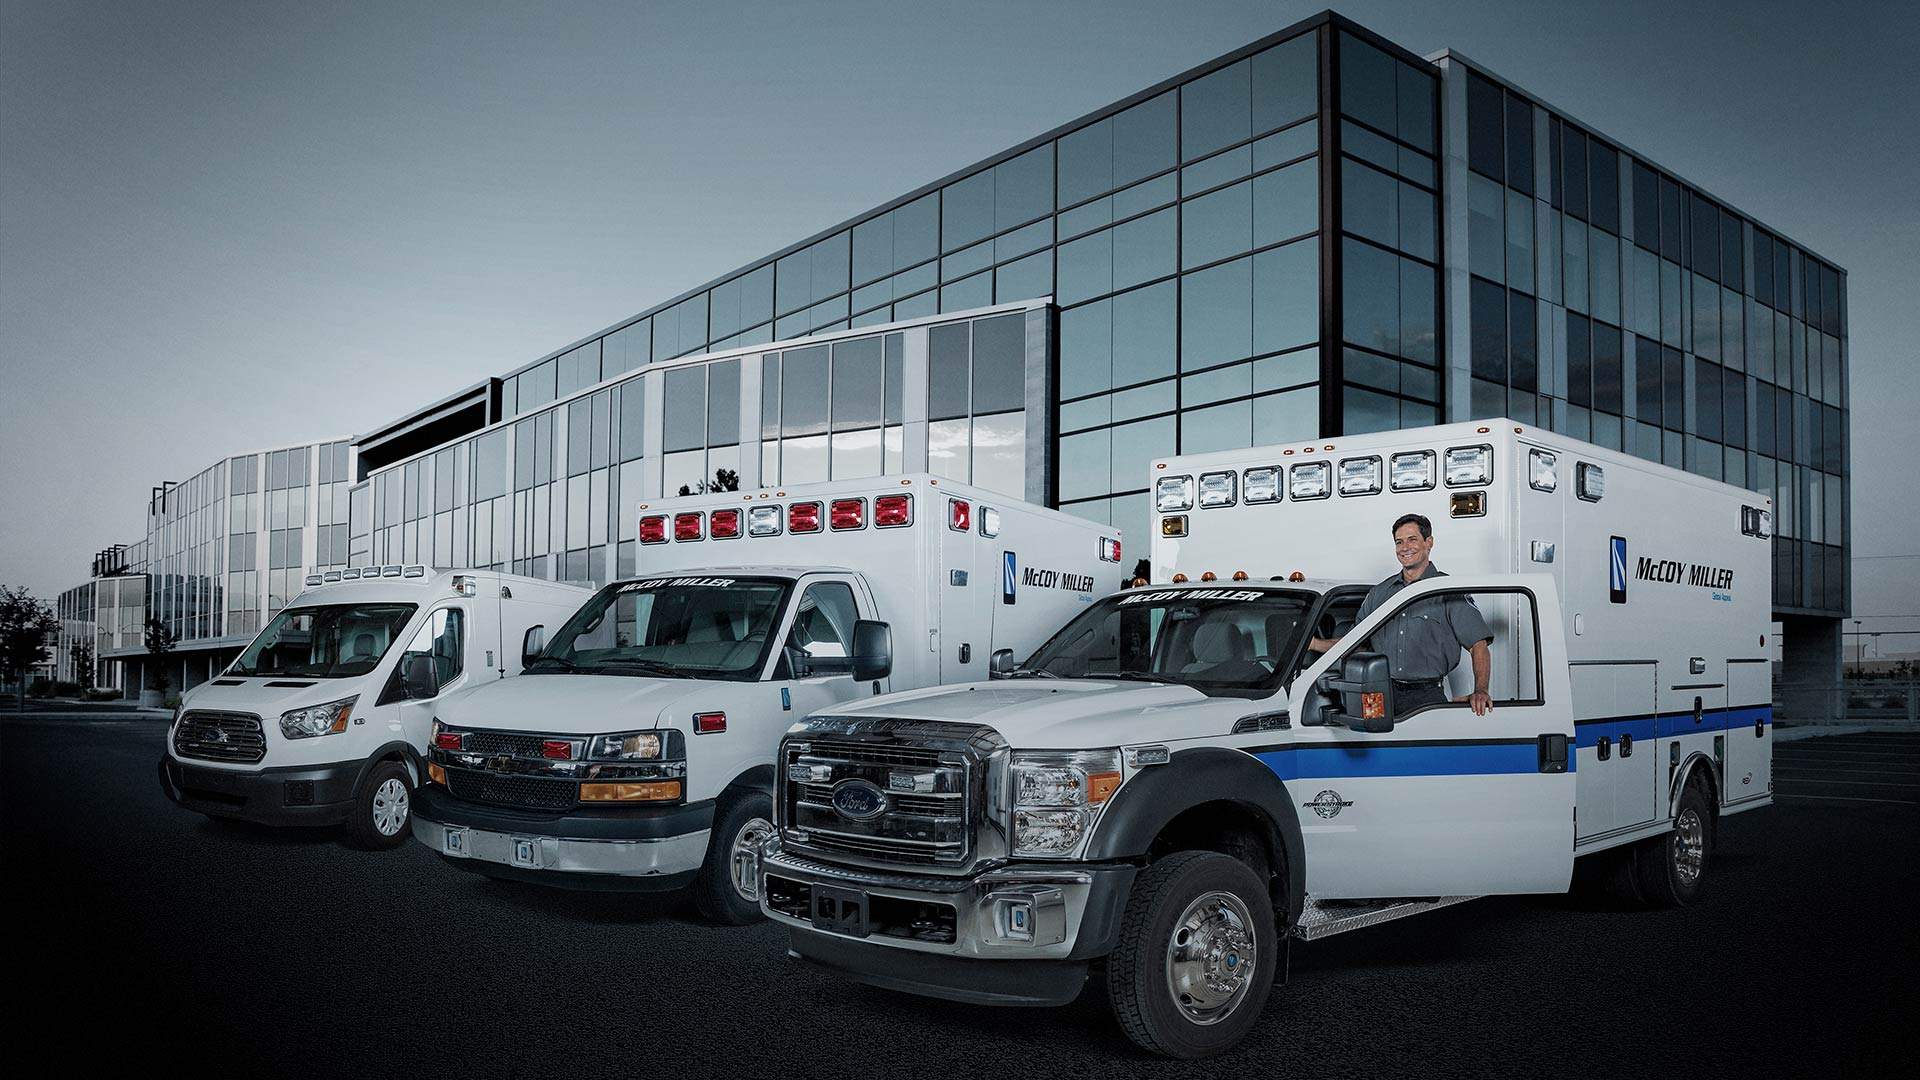 Ambulance Industrial Commercial Vehicle Automotive